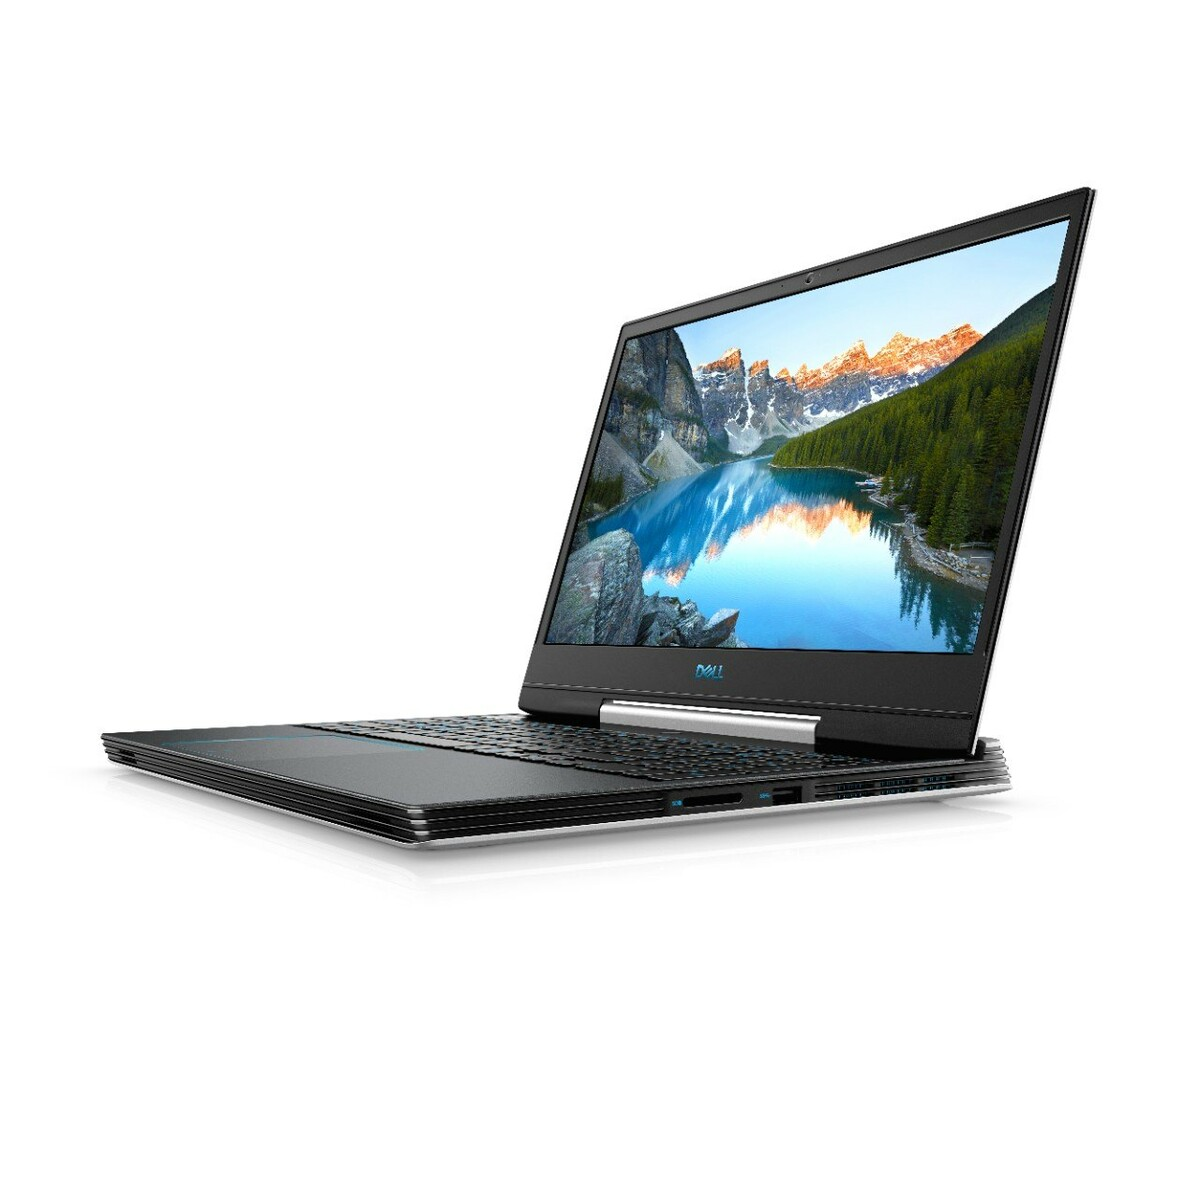 Dell G5 5590 with RTX 2060 graphics is only $1180 right now